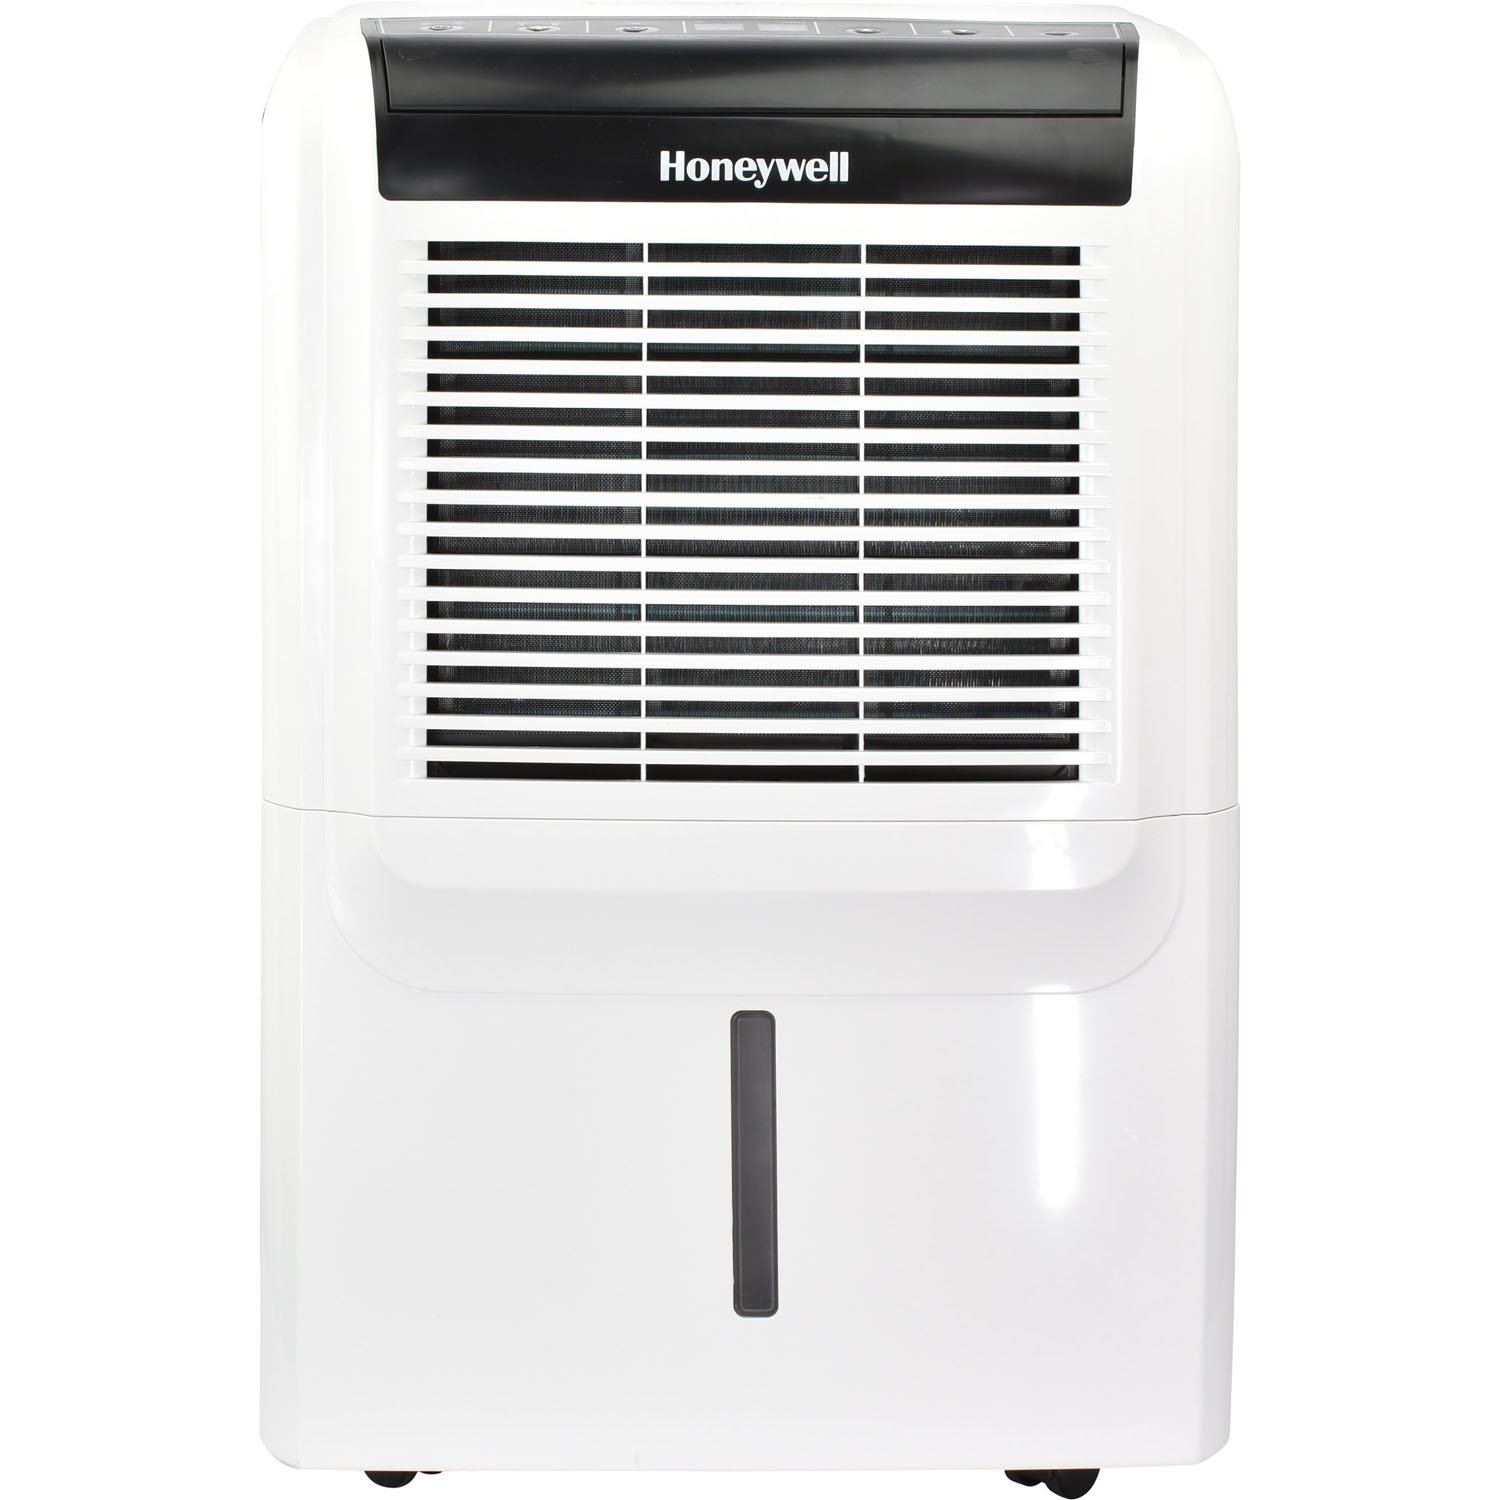 Honeywell 50-Pint Energy Star Dehumidifier with Built-in Drain Pump